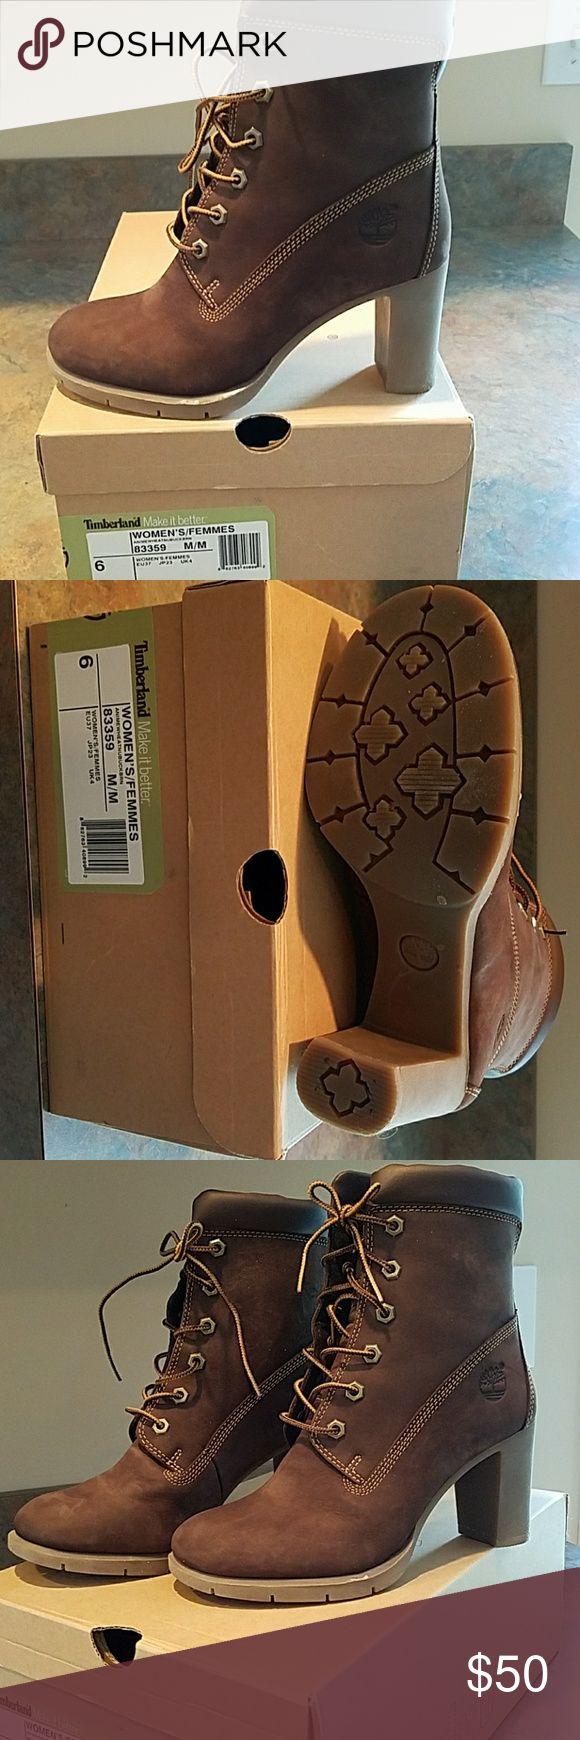 Timberland Micro-suede Boots For sale is a practically new pair of women's Timberland size 6 boots. The heel measures 3 inches. Timberland Shoes Ankle Boots & Booties